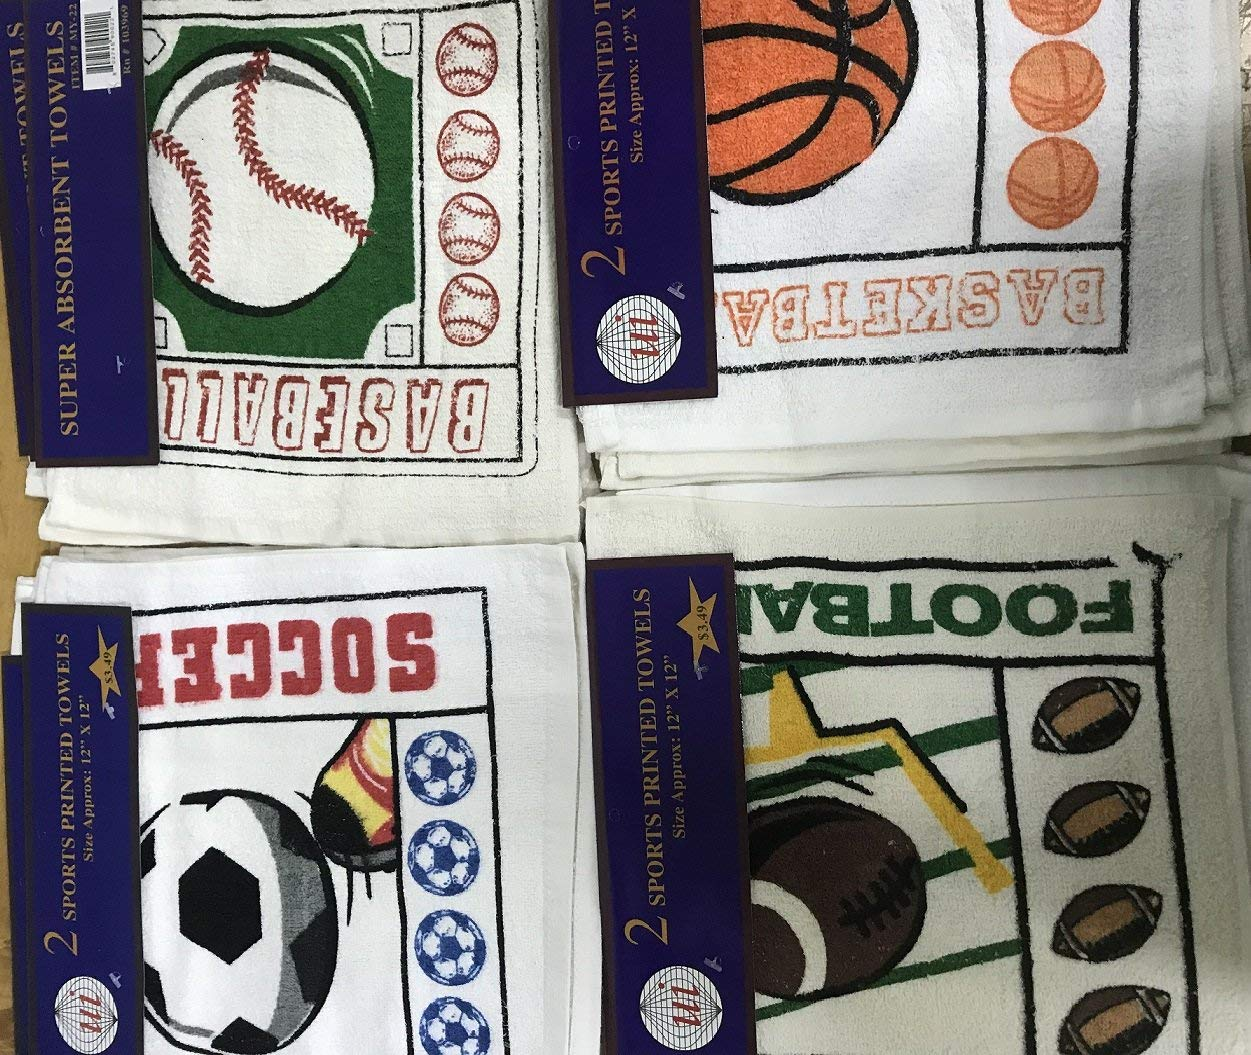 Bargain Priced Surplus Sports Washcloths, Rags, Wipers, Shop Towels with Soccer, Baseball, Basketball & Football Prints, Bulk, Eco-Friendly 100% Cotton, Size 12x12 Inch, Case of 480 Pieces